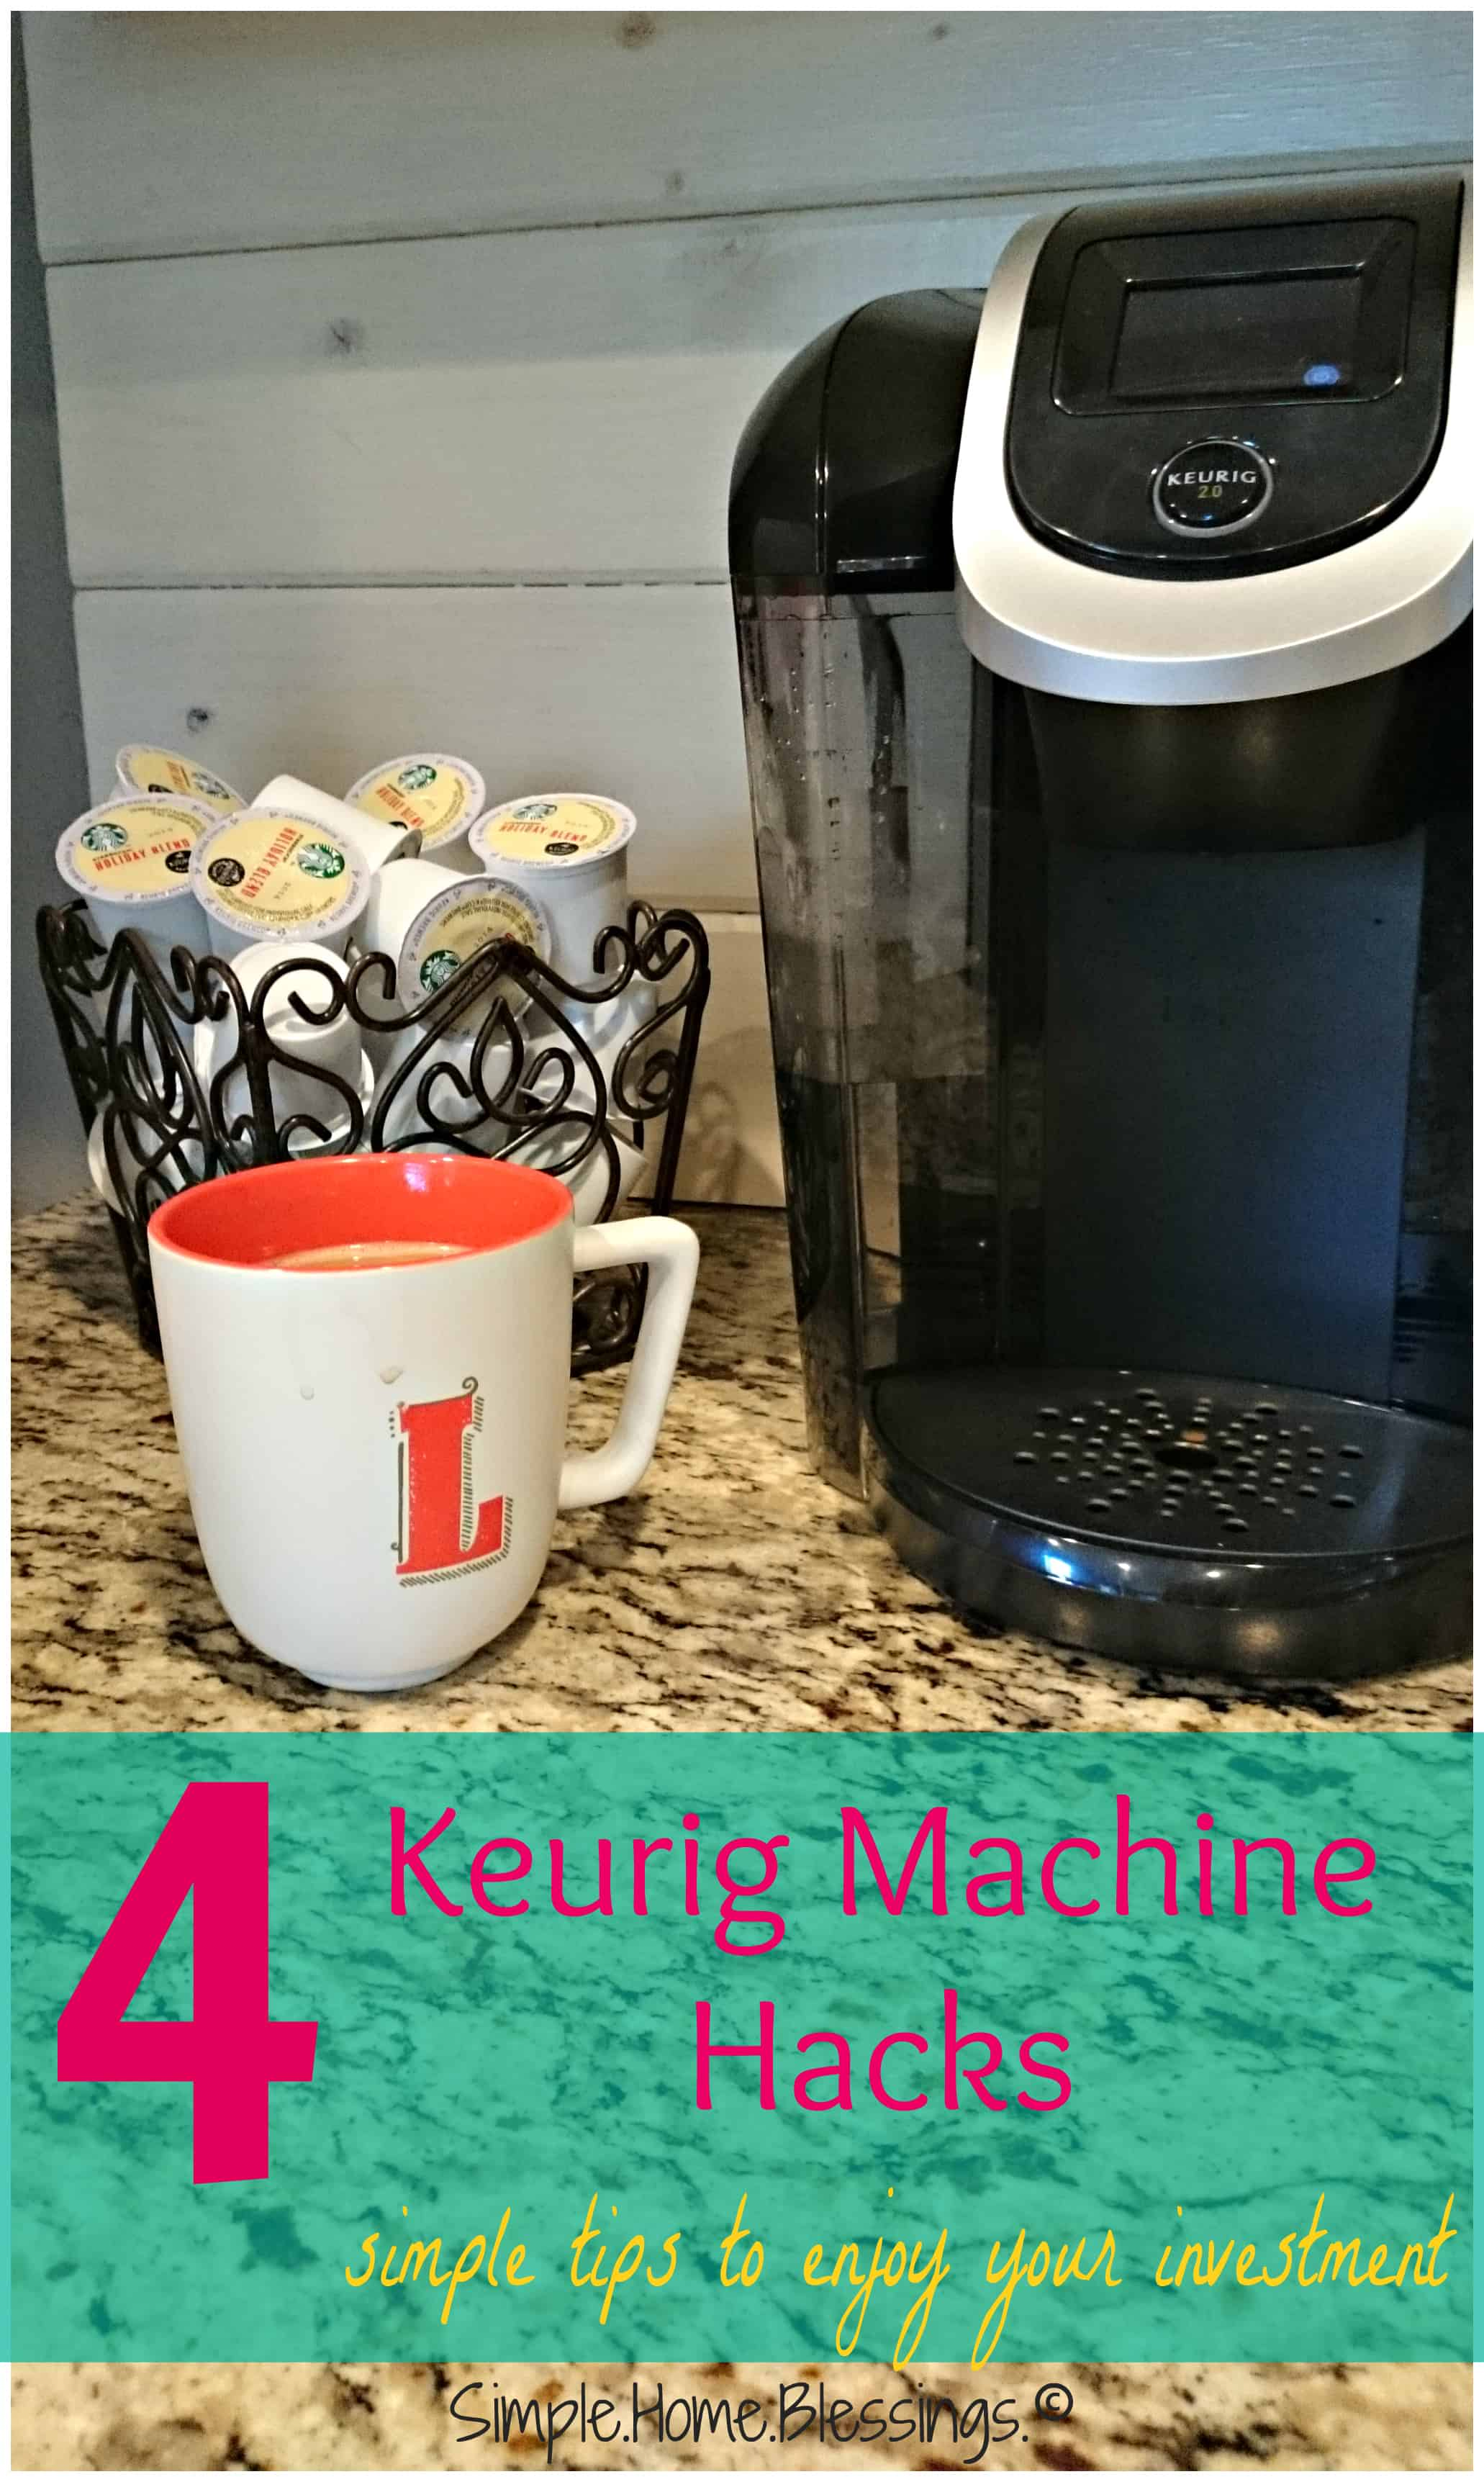 4 Keurig Machine Hacks - Protect Your Investment - Ask Anna